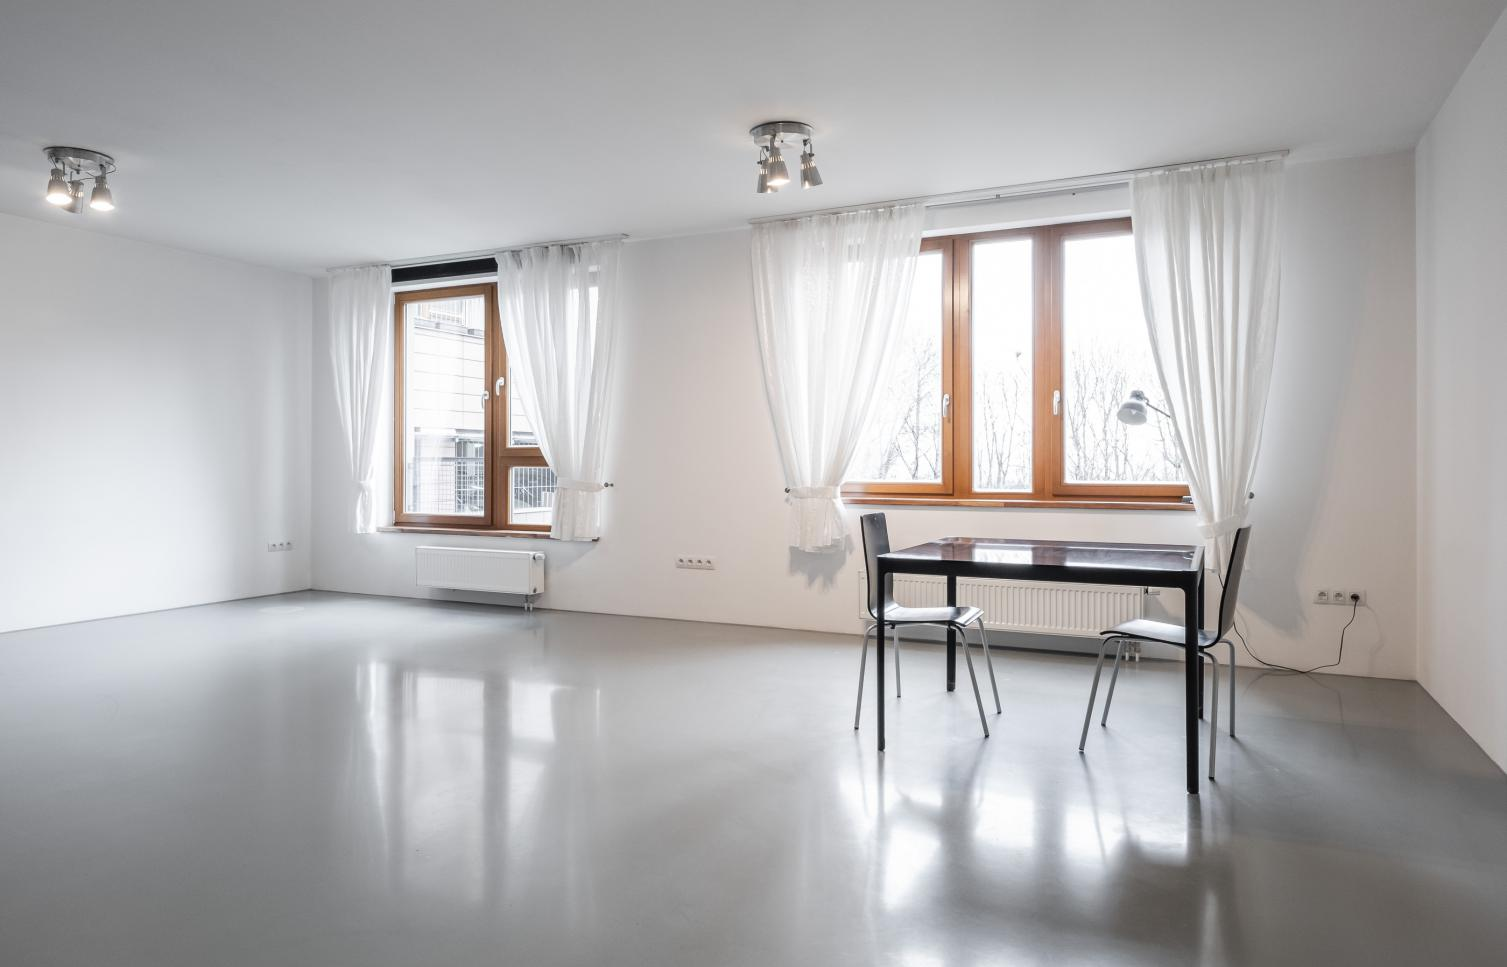 APARTMENT FOR RENT, street K Červenému vrchu, Prague 6 - Vokovice